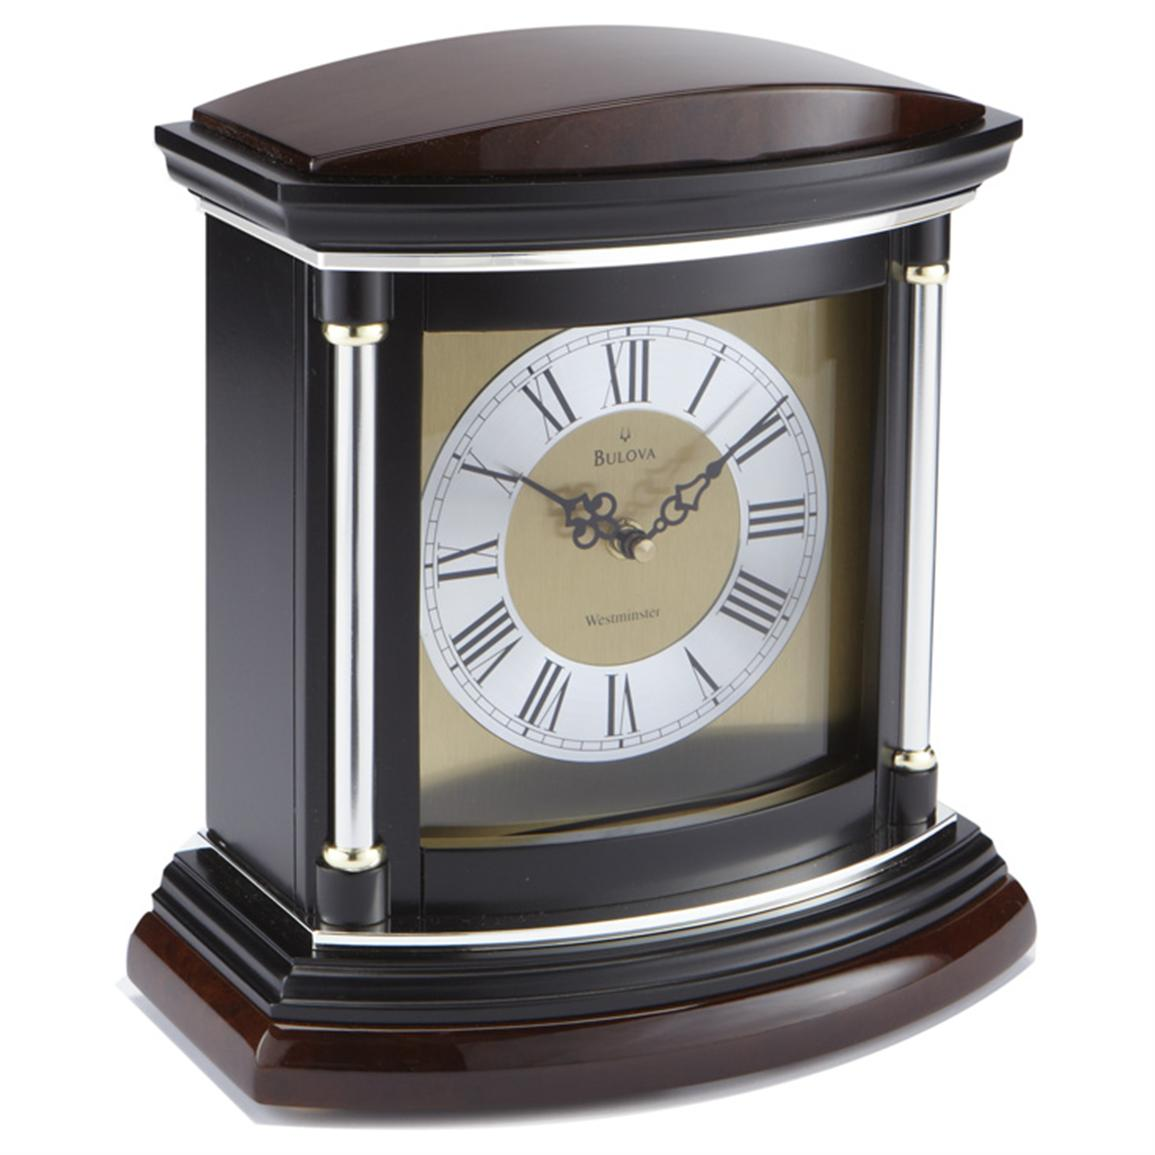 Bulova Mantel Clock | Art Deco Style Mantel Clocks | Www Bulova Com